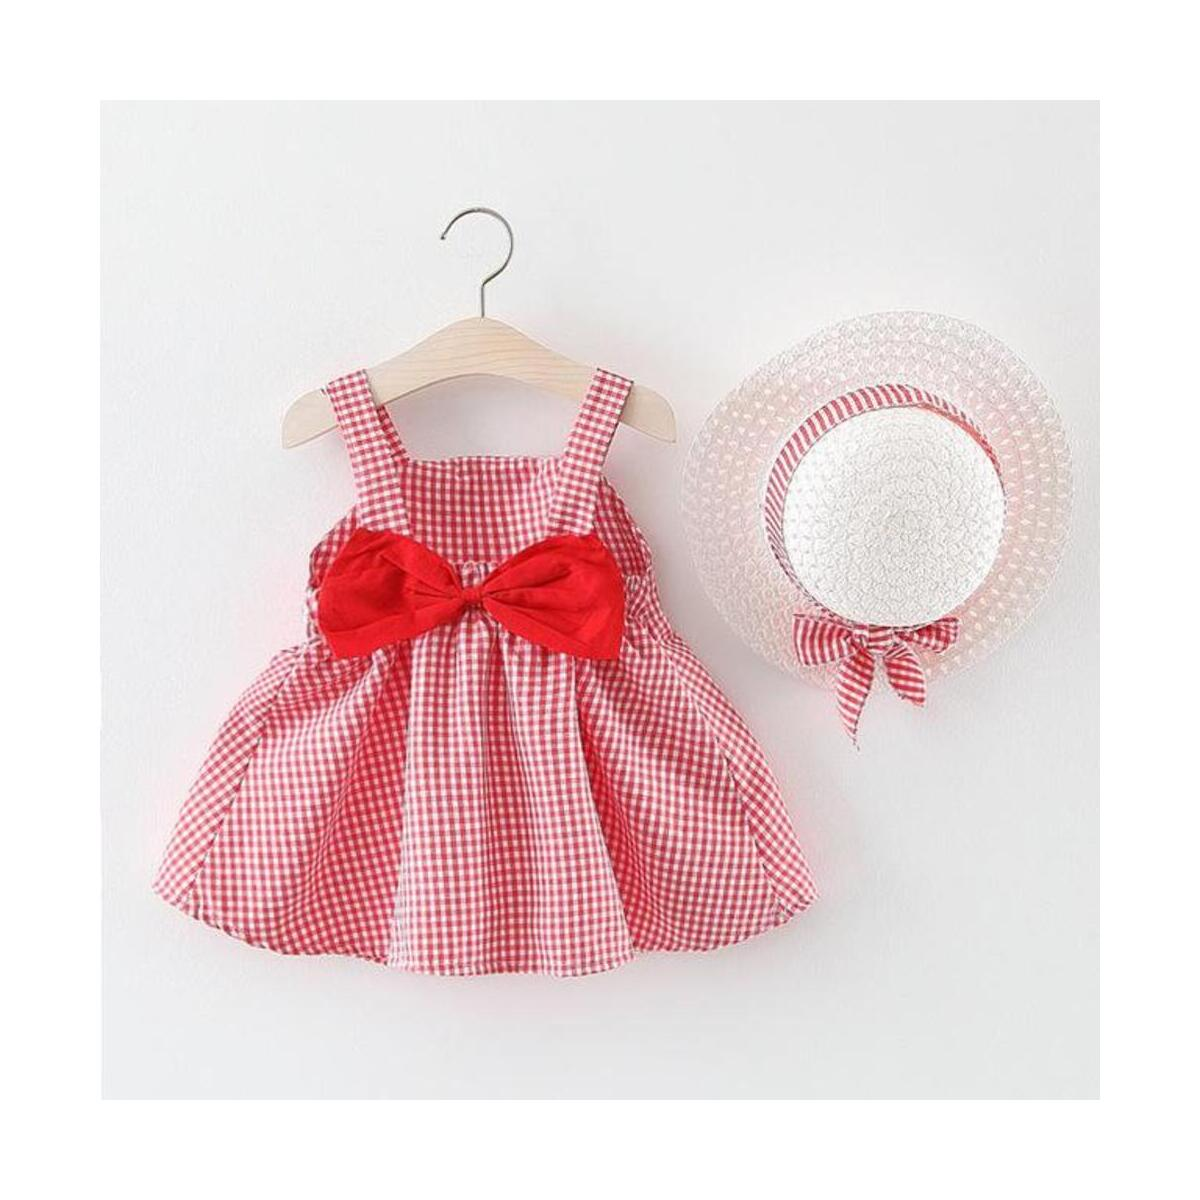 Cute Toddler Kids Baby Girl Summer Outfits Clothes Floral Set